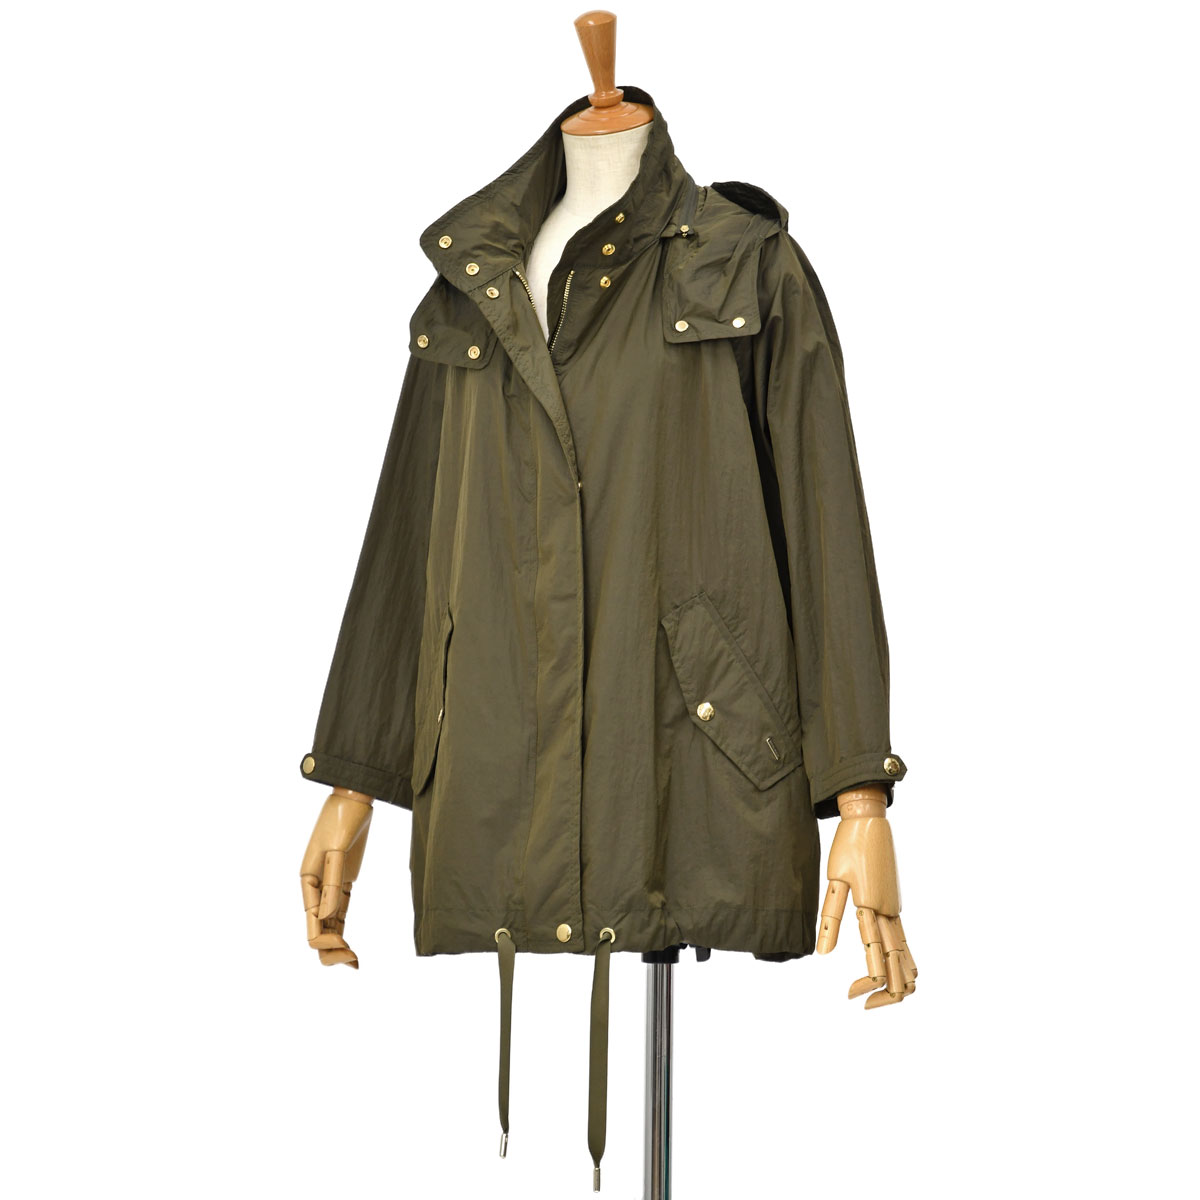 【30%OFF】WOOLRICH【ウールリッチ】フーデッドコート ANORAK WWOU0465 6291 ARMY OLIVE ナイロン カーキ